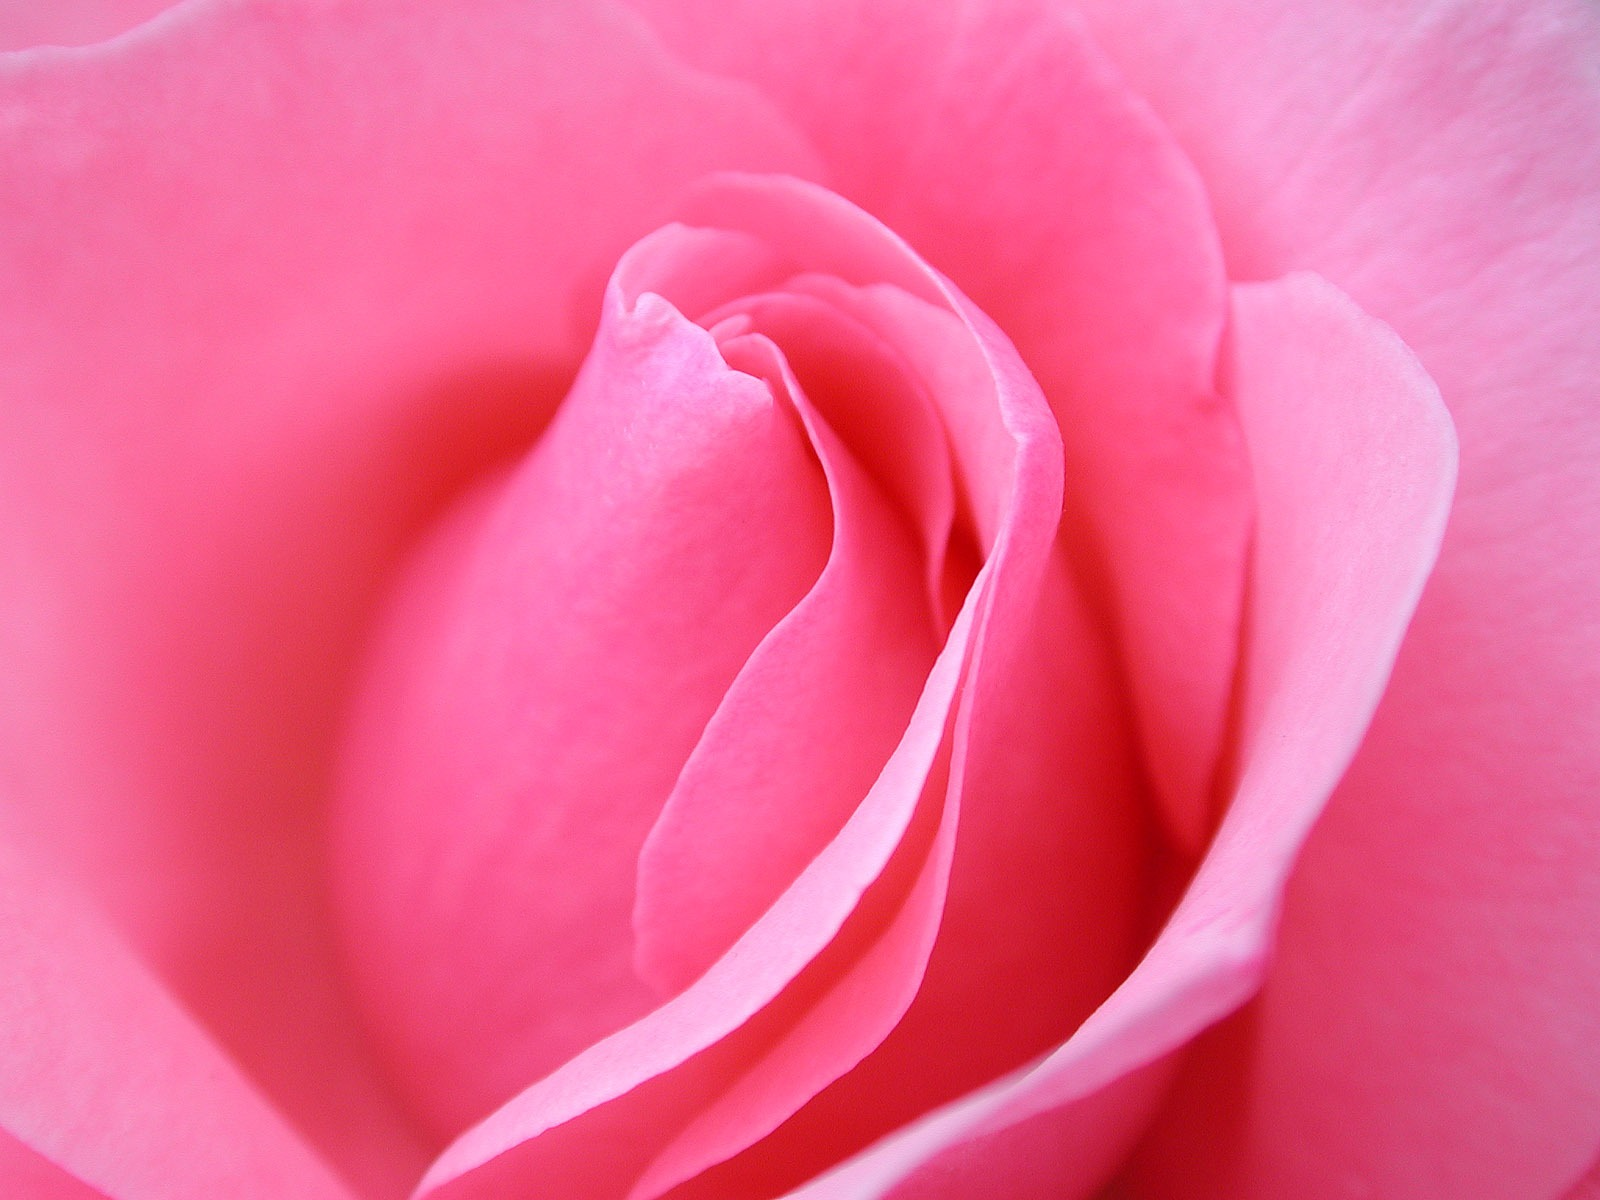 WWW Pink Rose Wallpapers Com